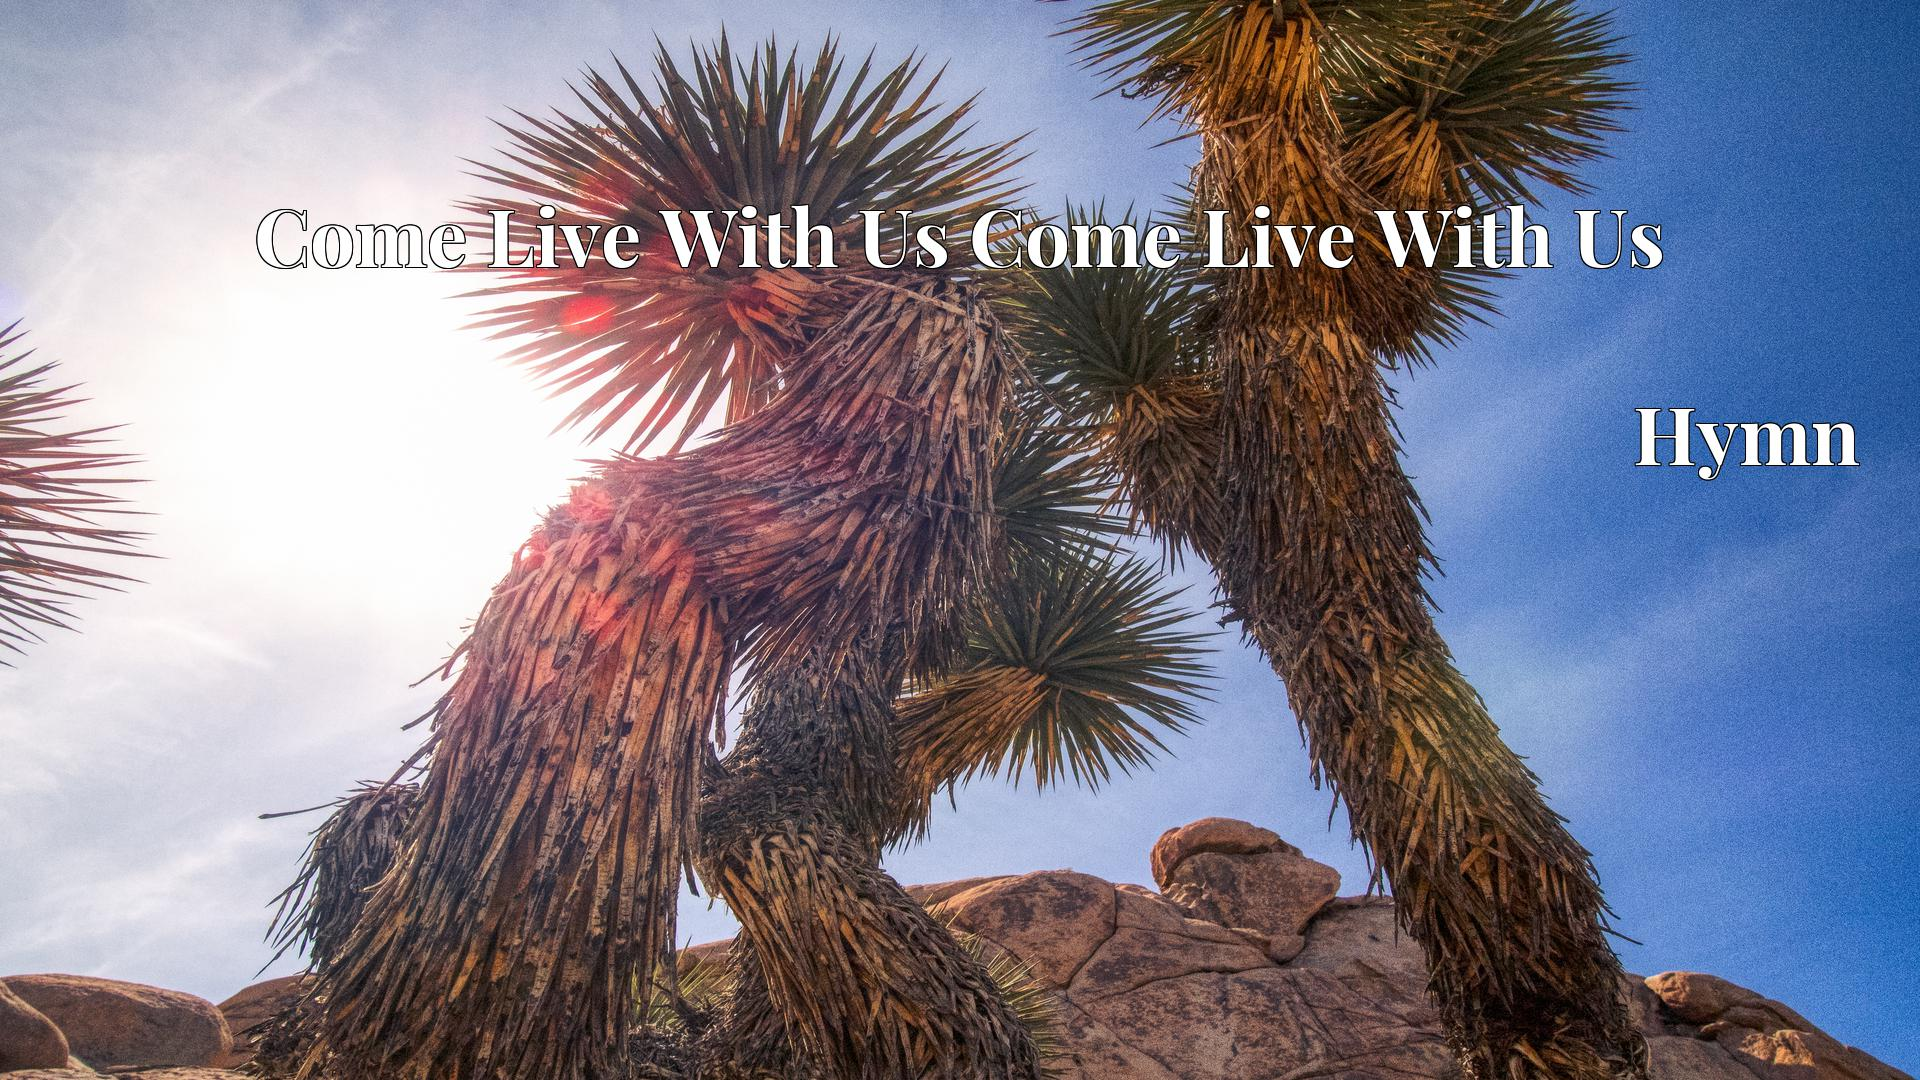 Come Live With Us Come Live With Us Hymn Lyric